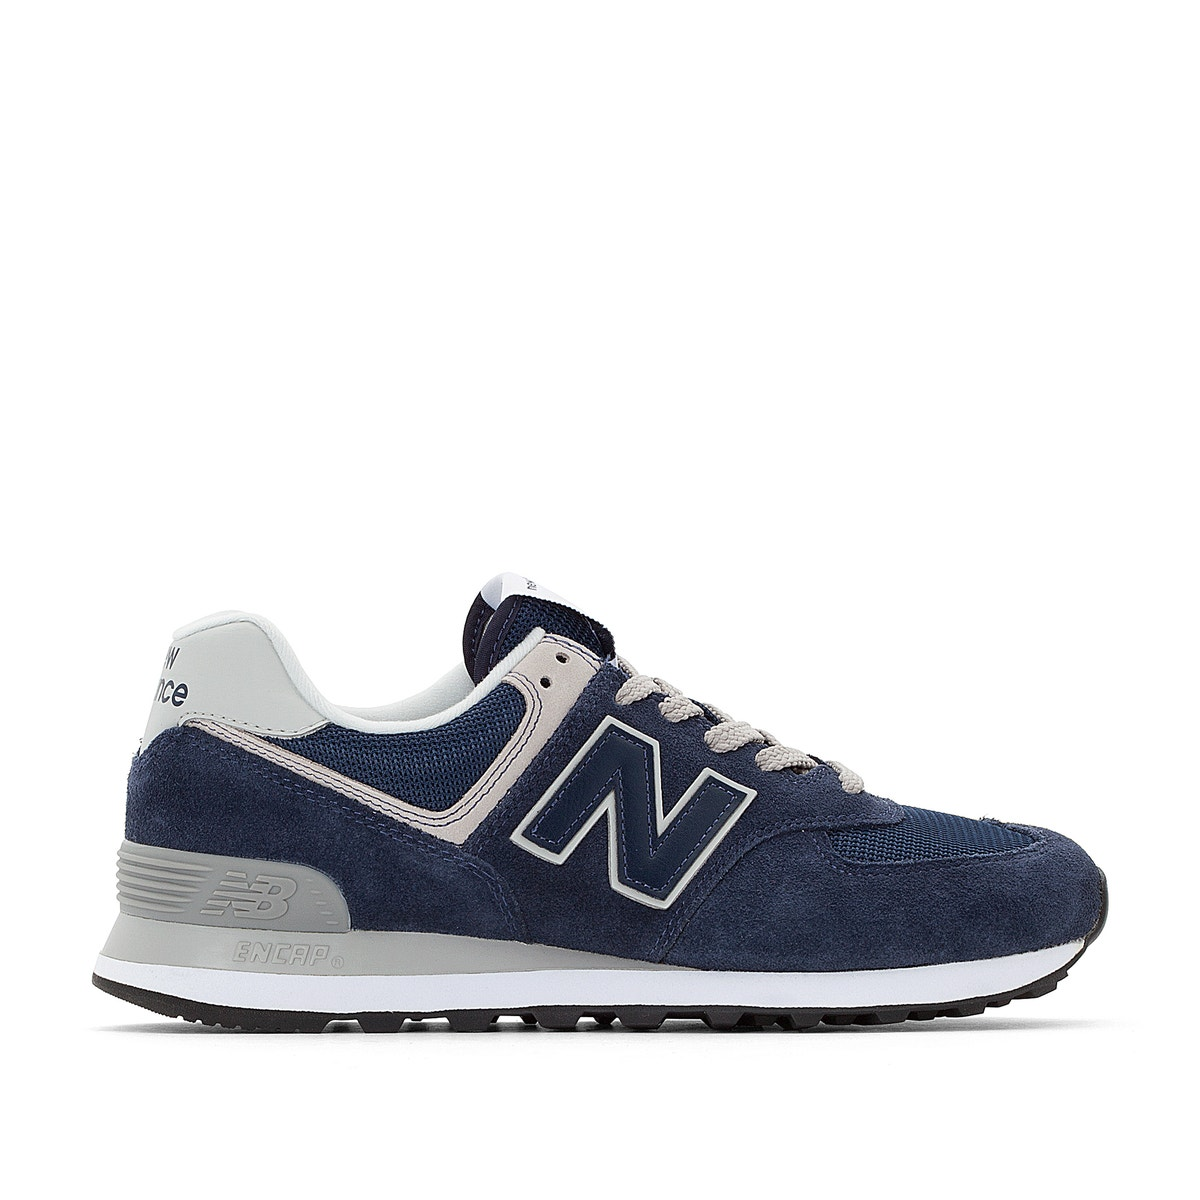 New Balance - New Balance Sneakers ML574EGN 350124979 - 5821 laredoute   ανδρικα   sneakers   low cut